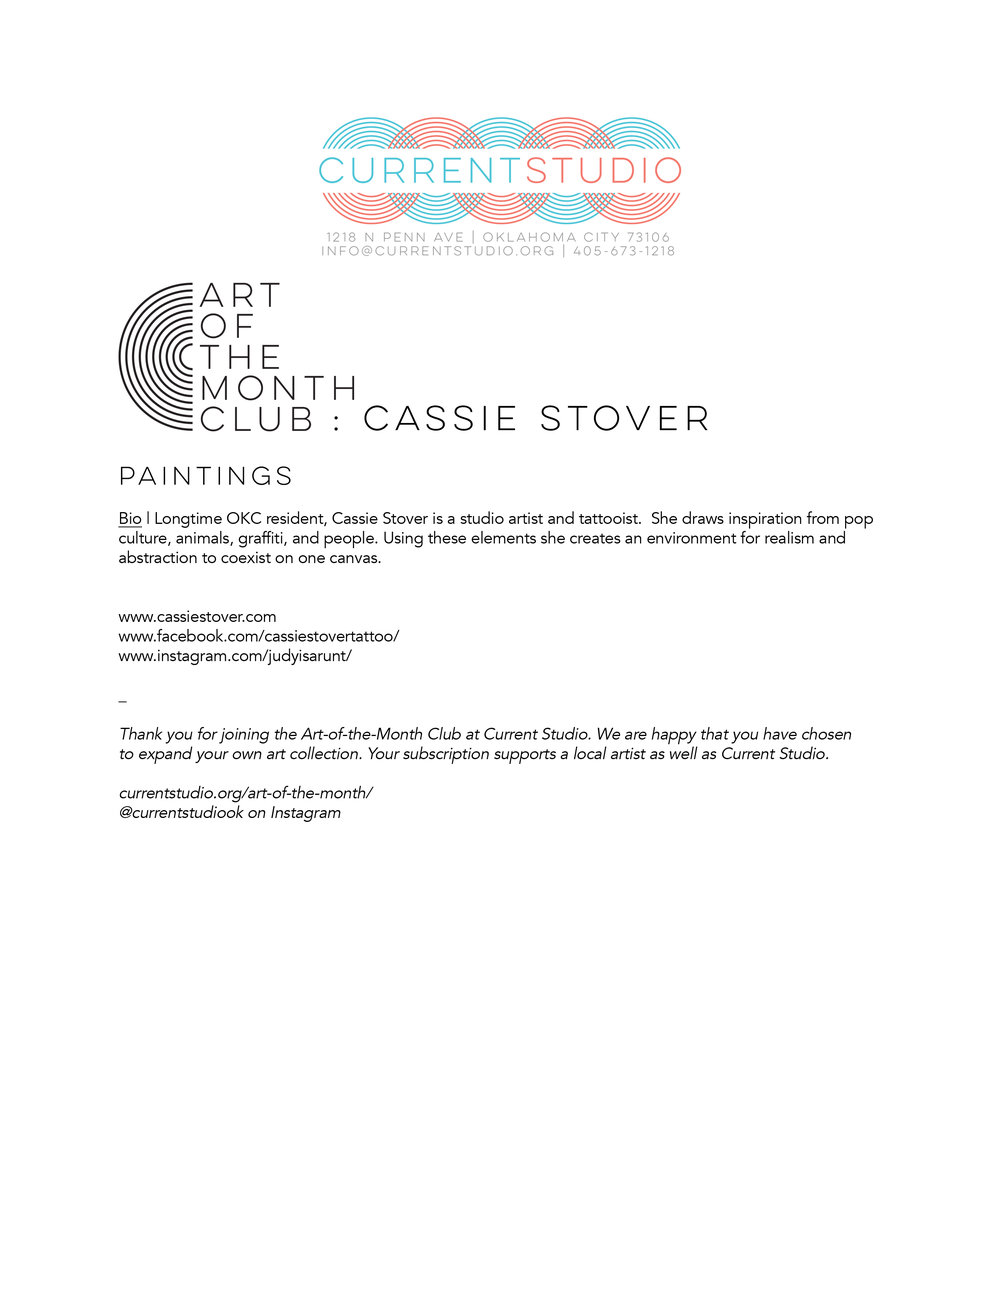 art of the month artist sheet - cassie stover.jpg